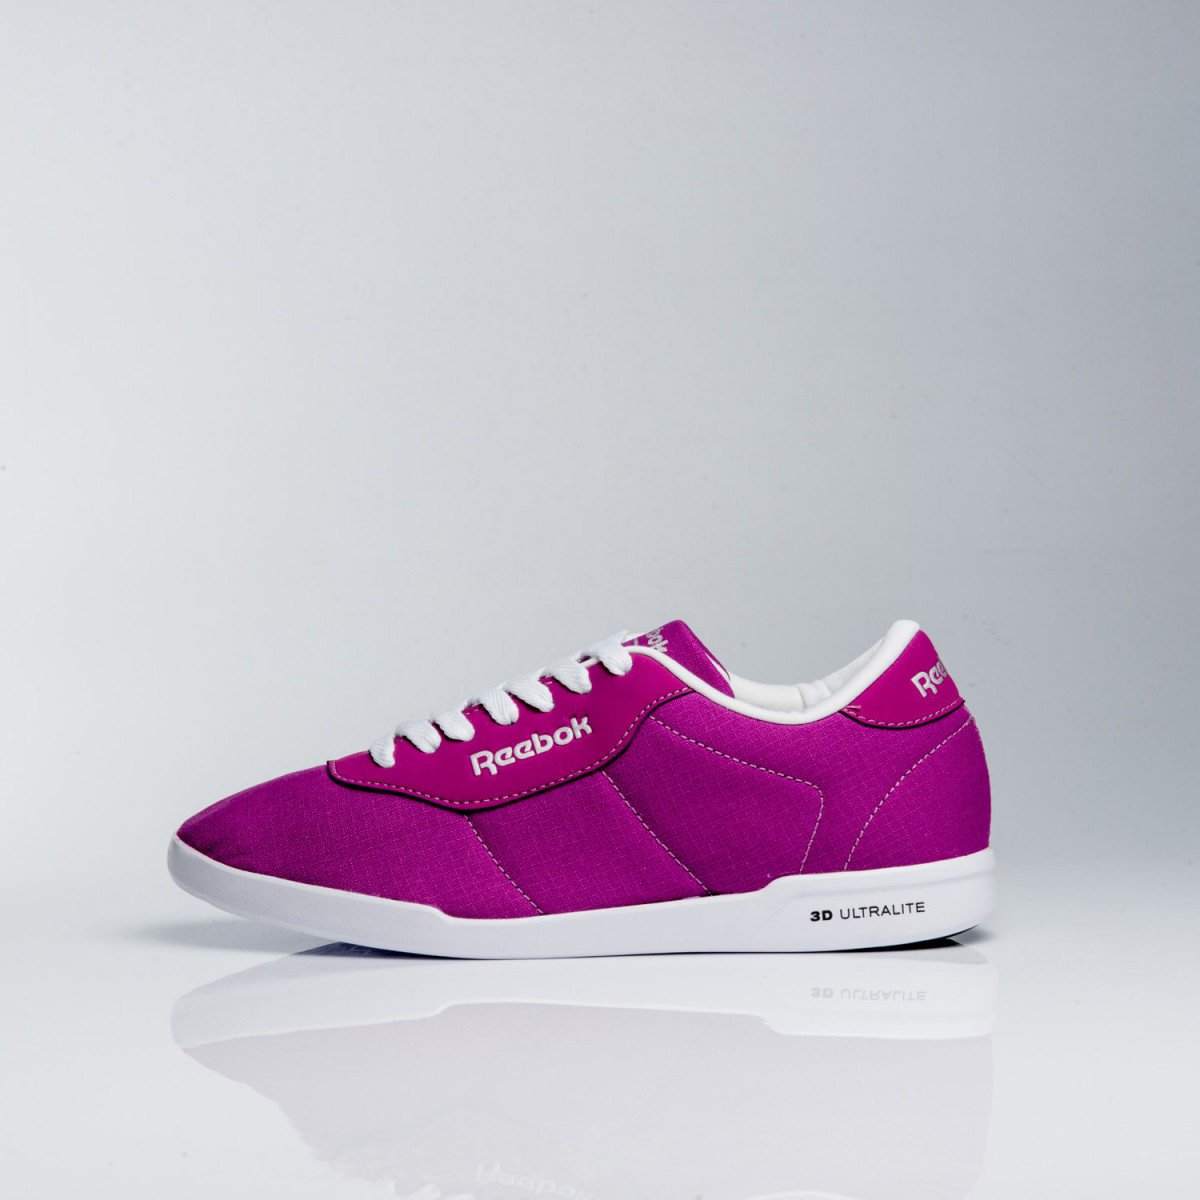 Zapatillas Reebok Princess Ultralite